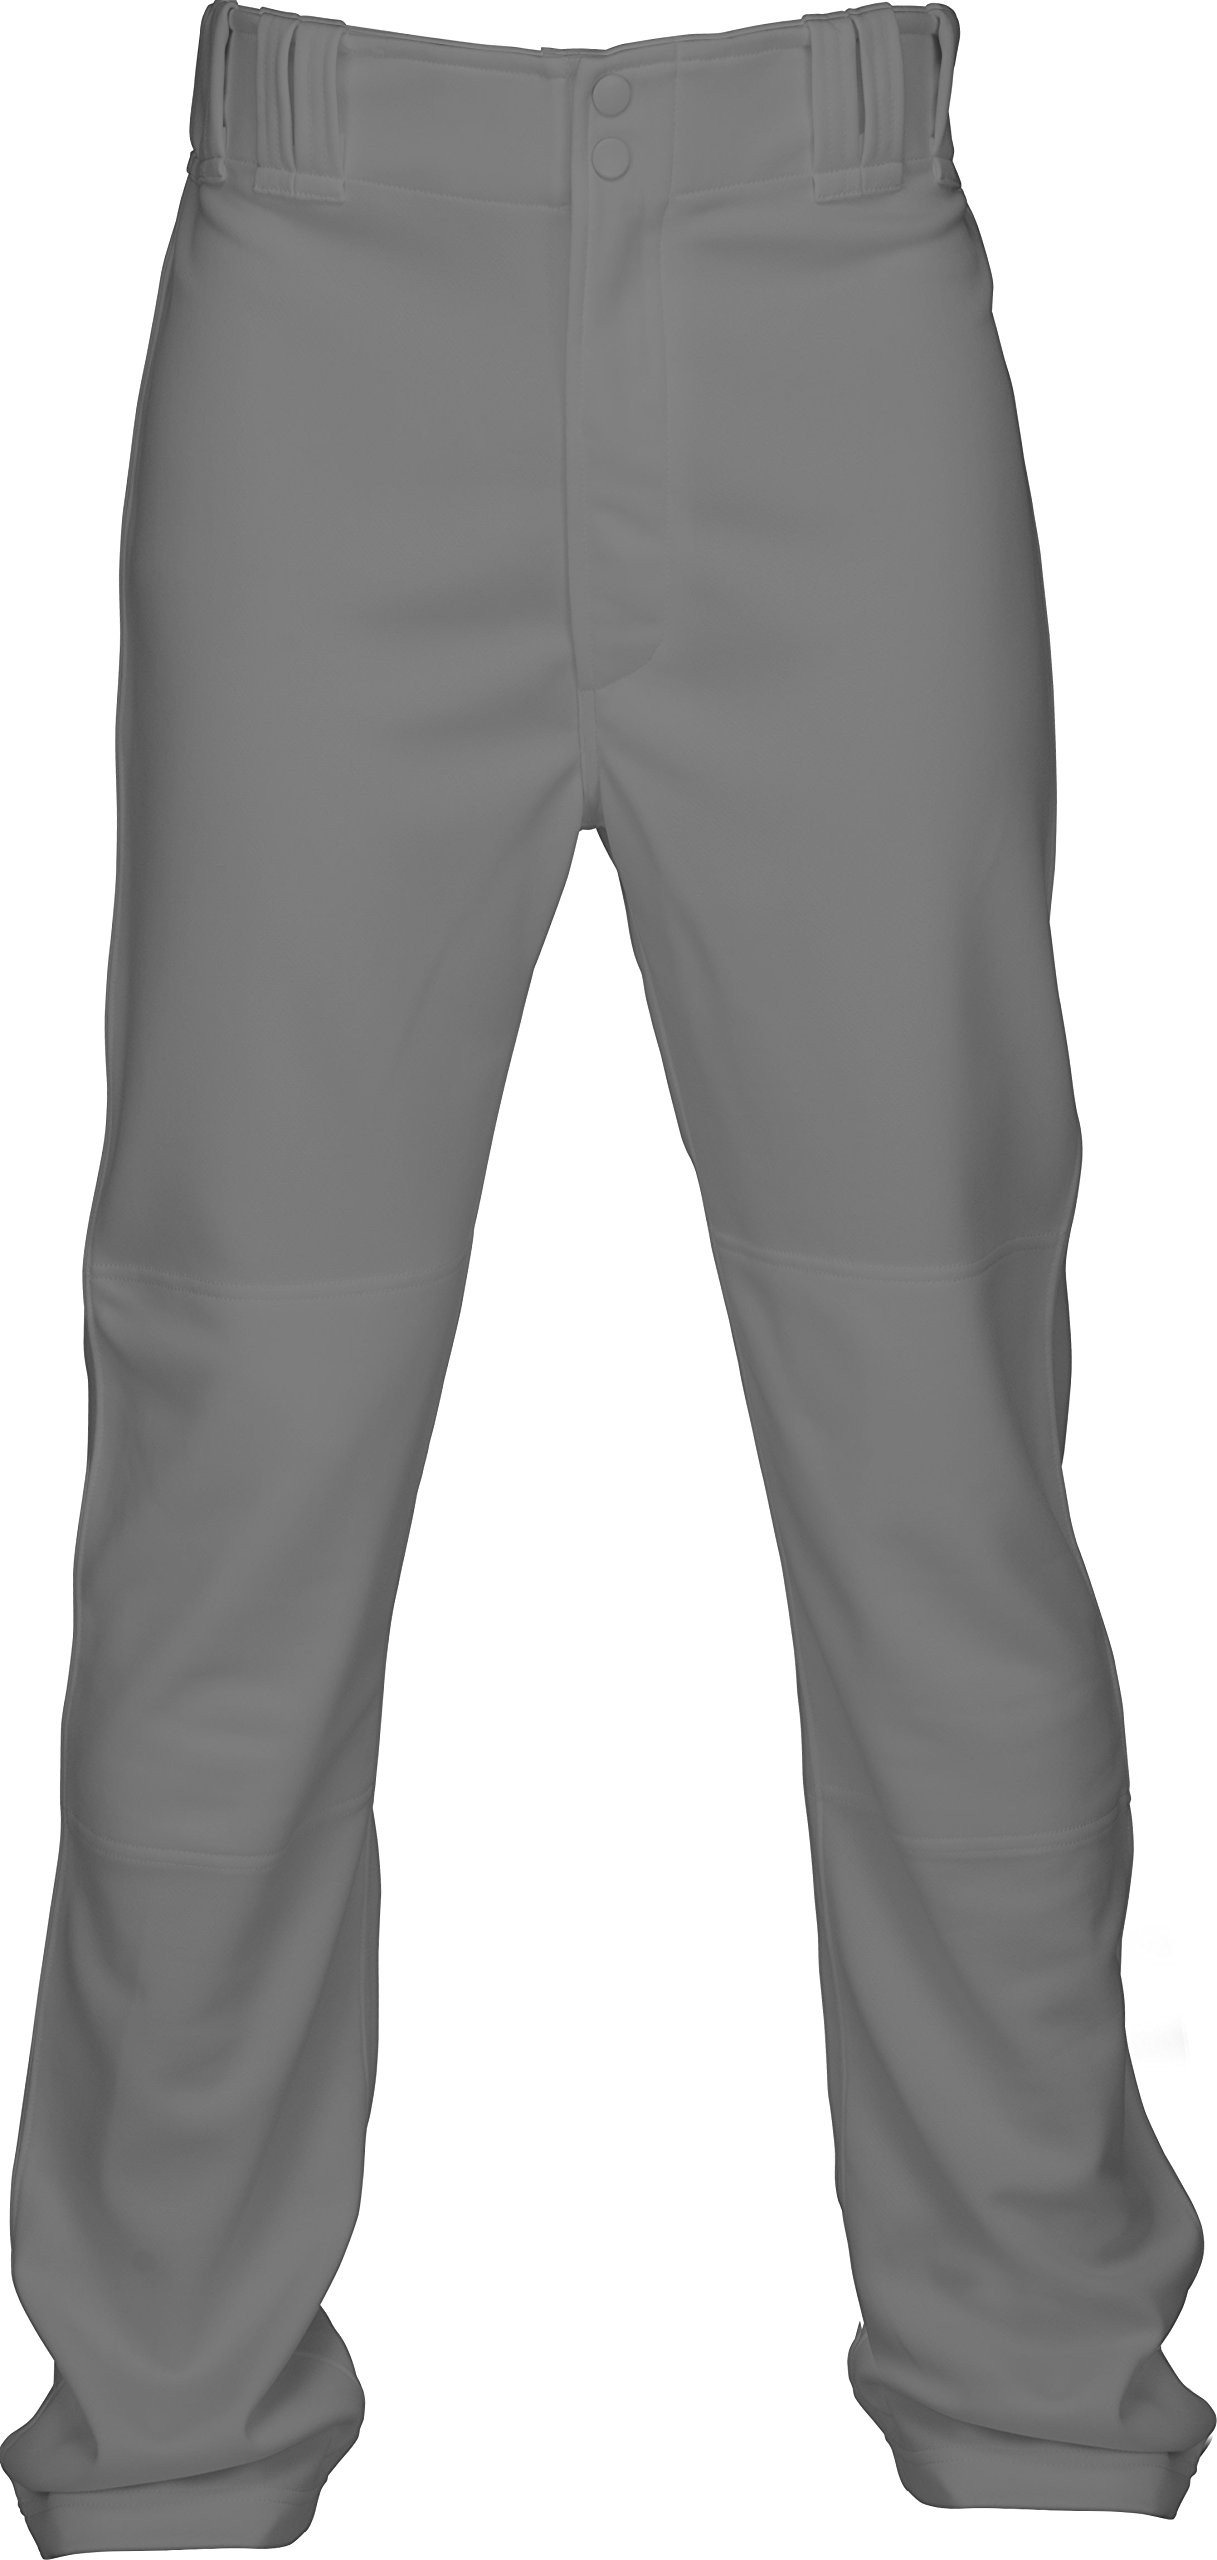 Marucci Youth Elite Double Knit Baseball Pant, Gray, XX-Large by Marucci